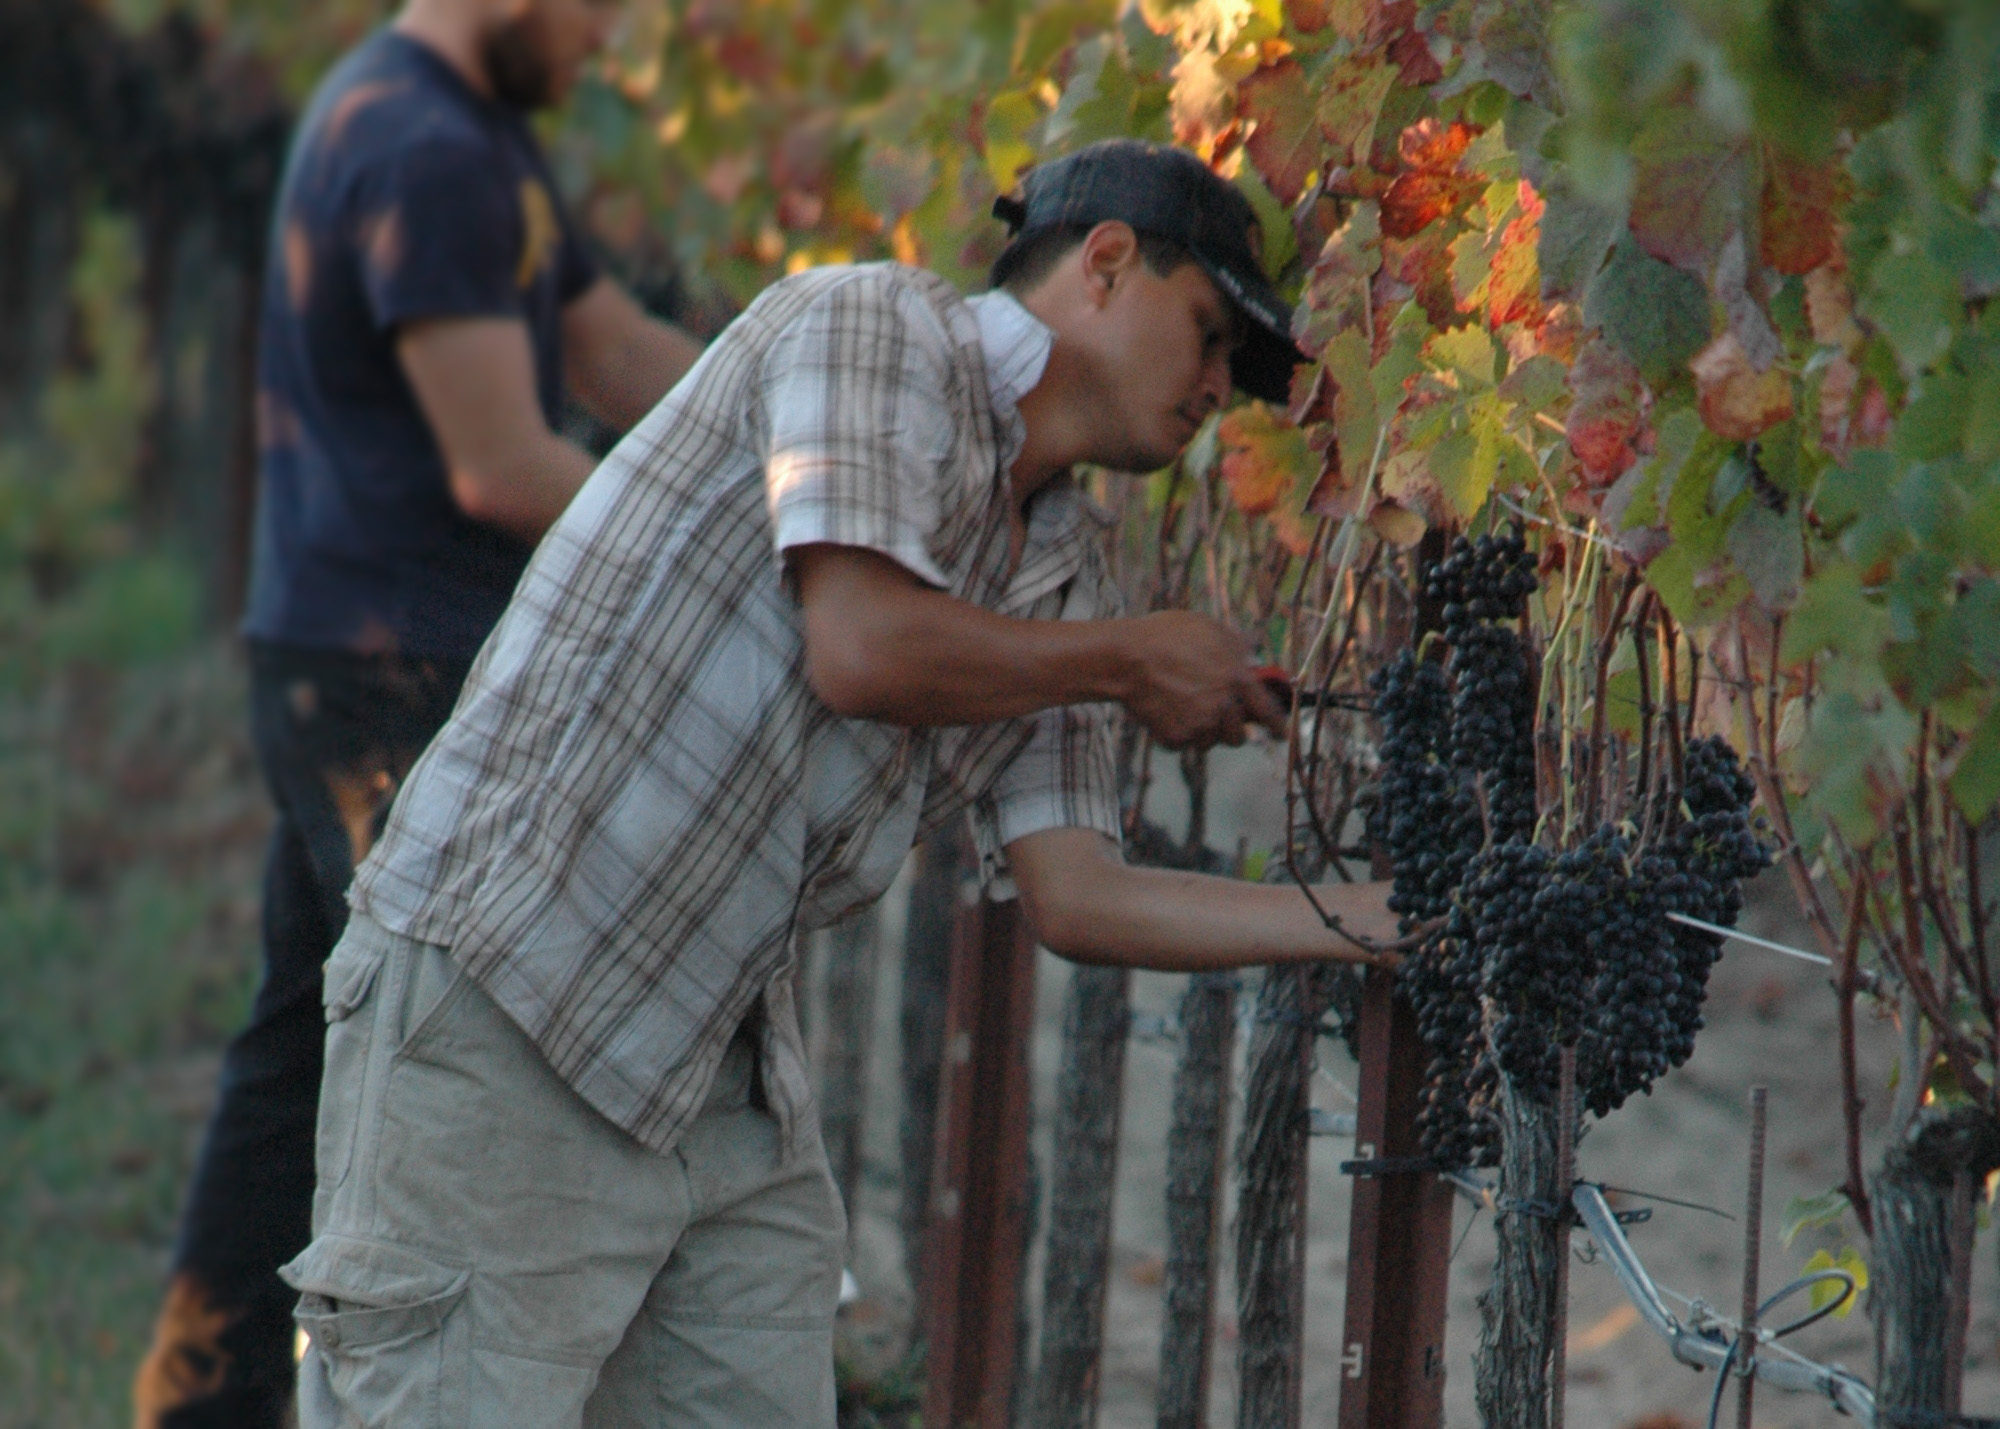 fernando harvesting grapes